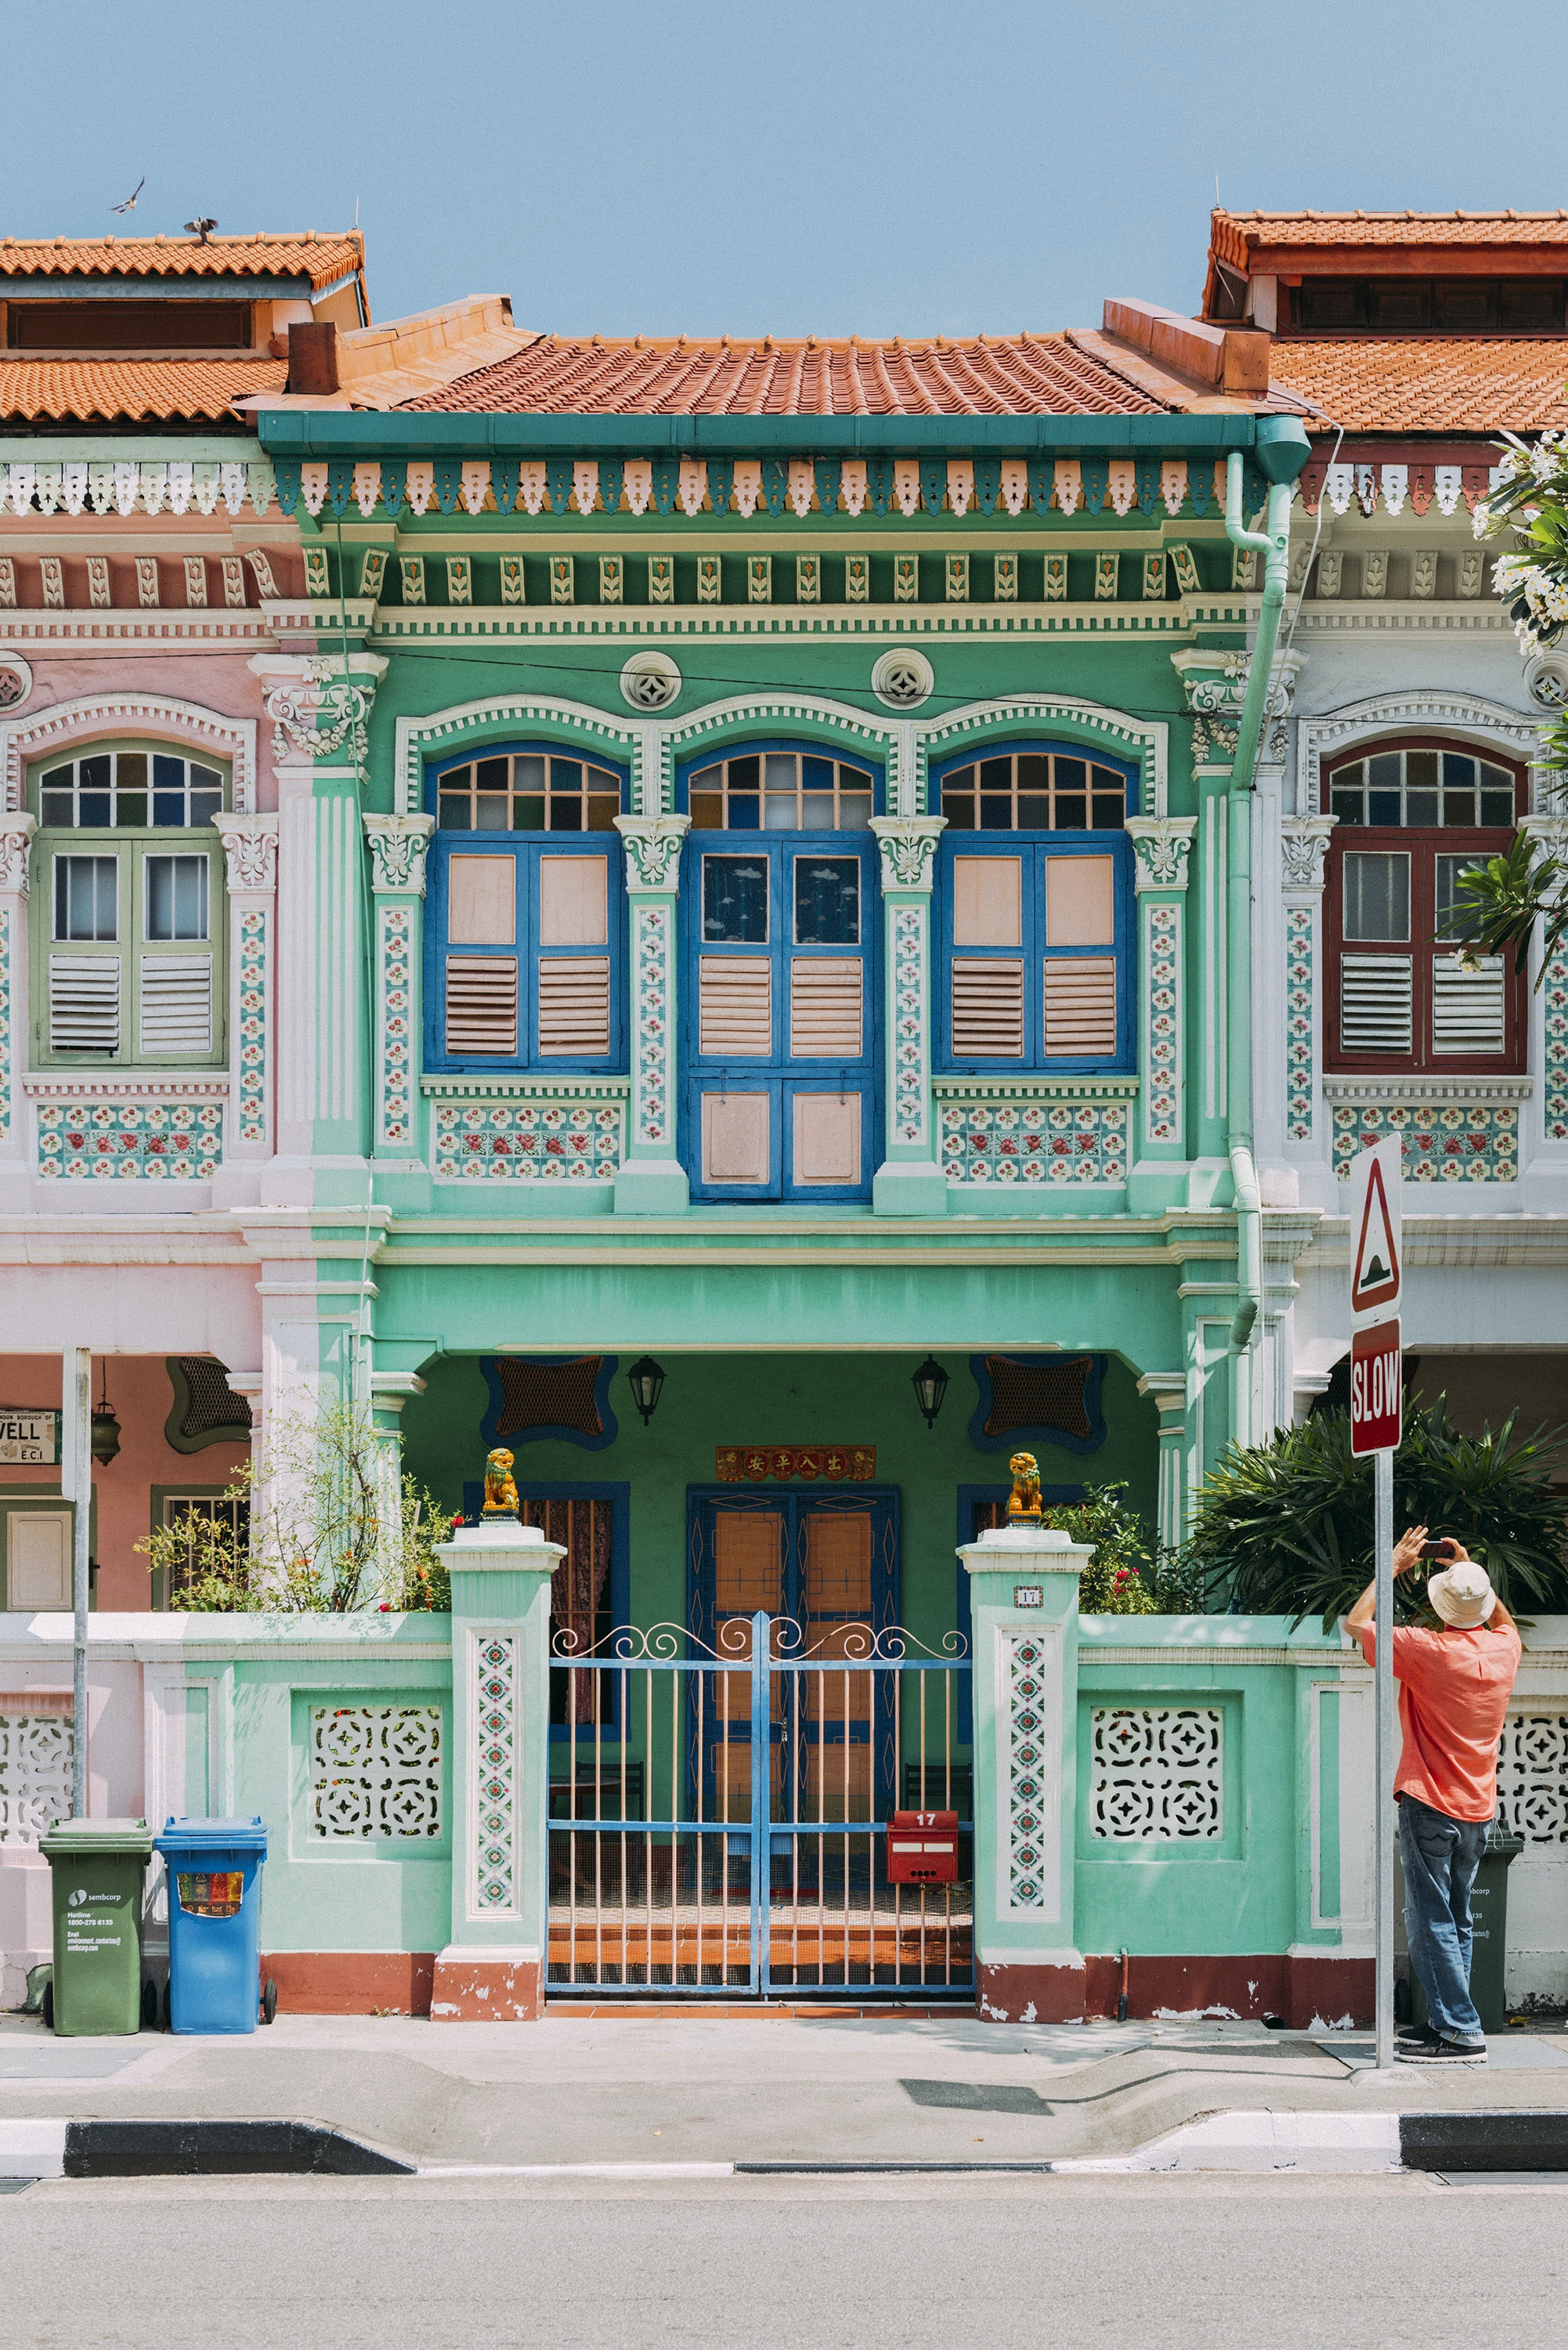 Peranakan-style row houses in Singapore.